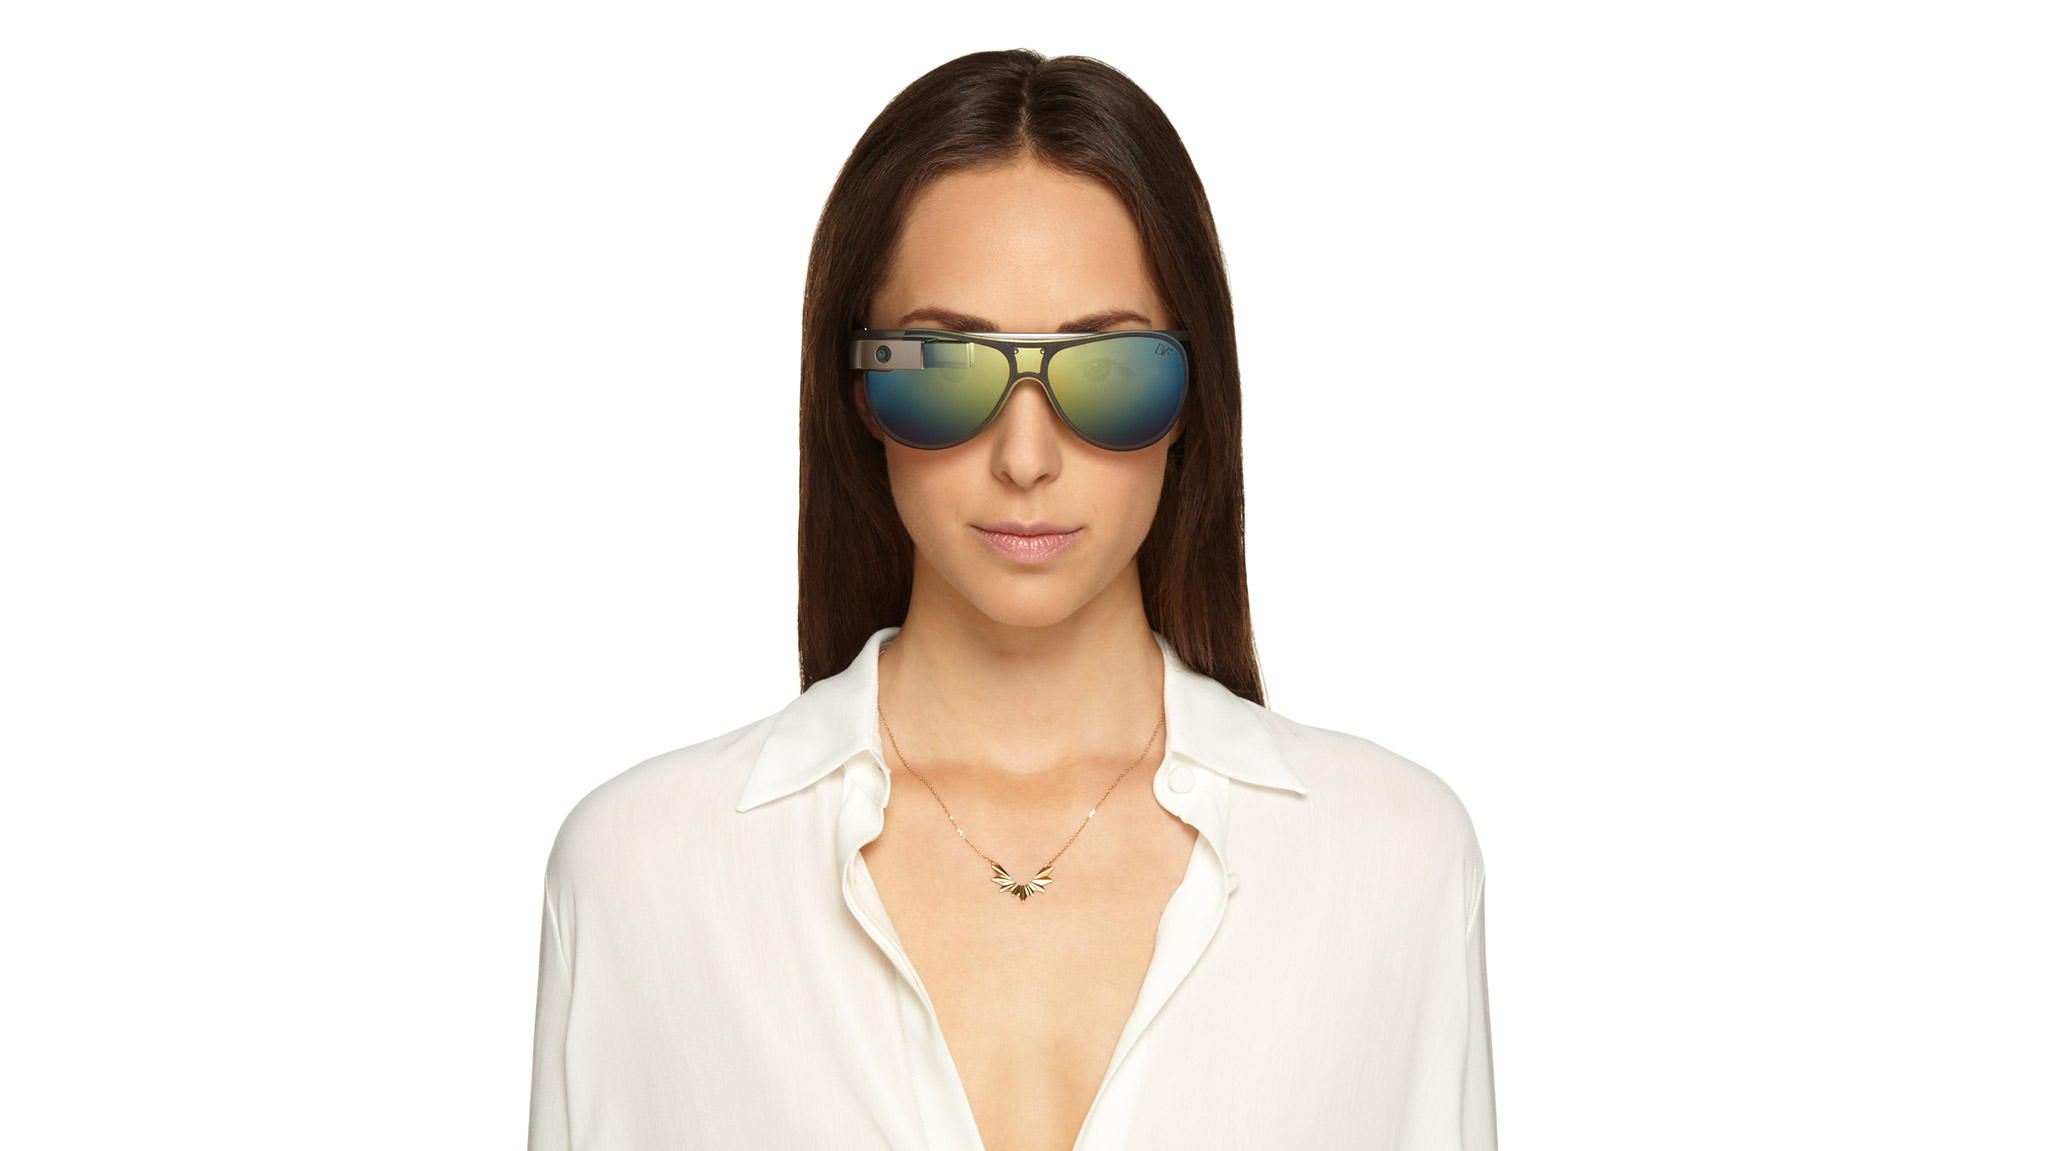 Shop the DVF x Google Glass Collection